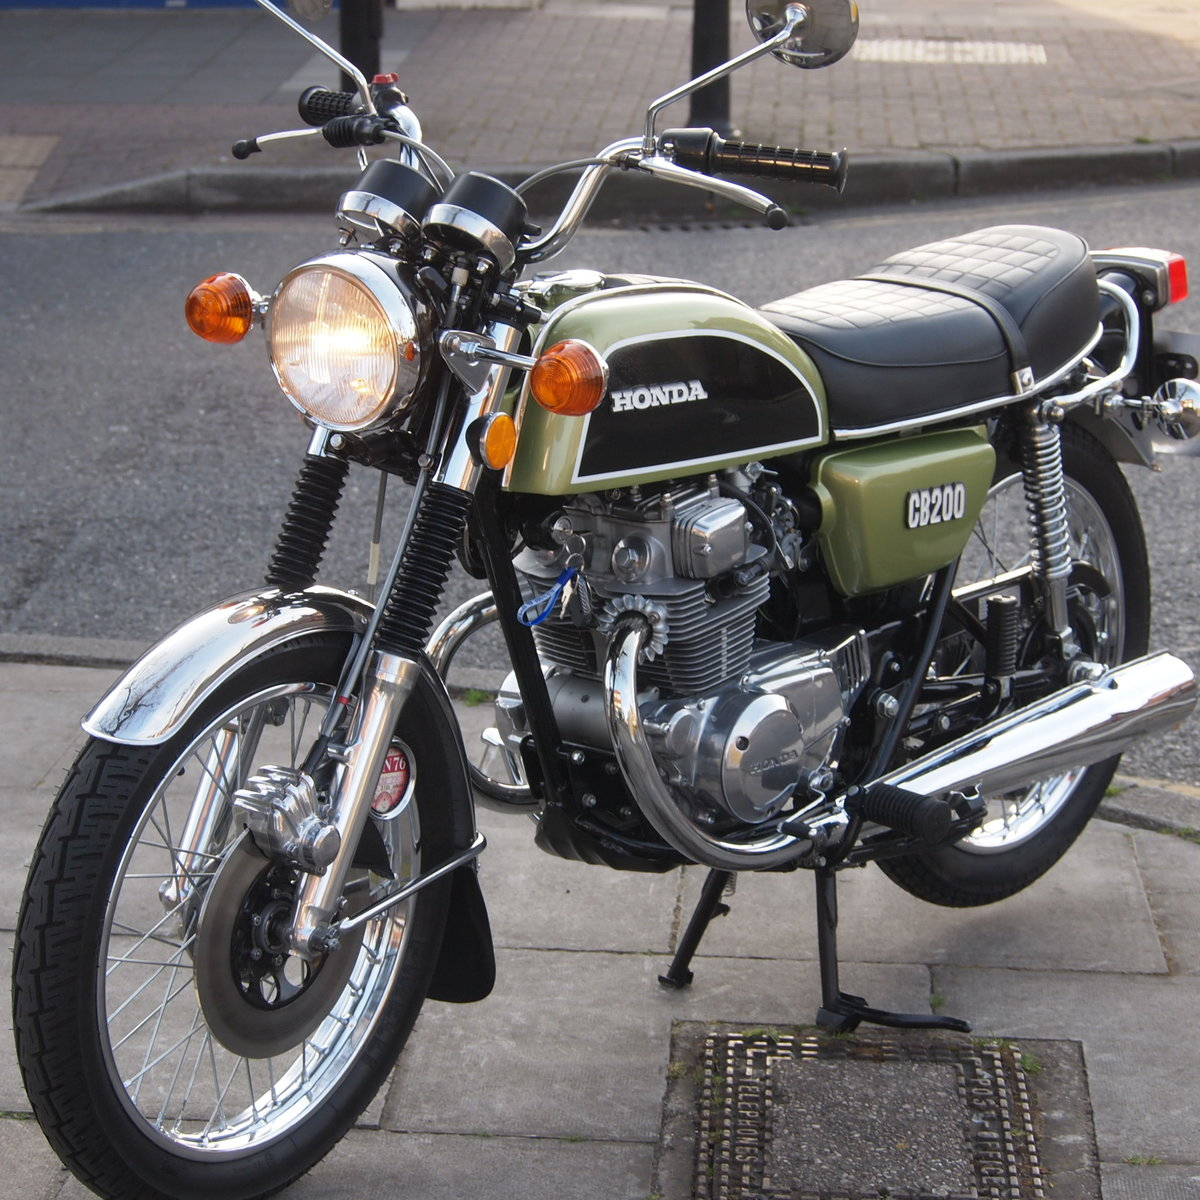 1976 Honda CB200 UK Bike, RESERVED FOR SHAUN. SOLD (picture 5 of 6)